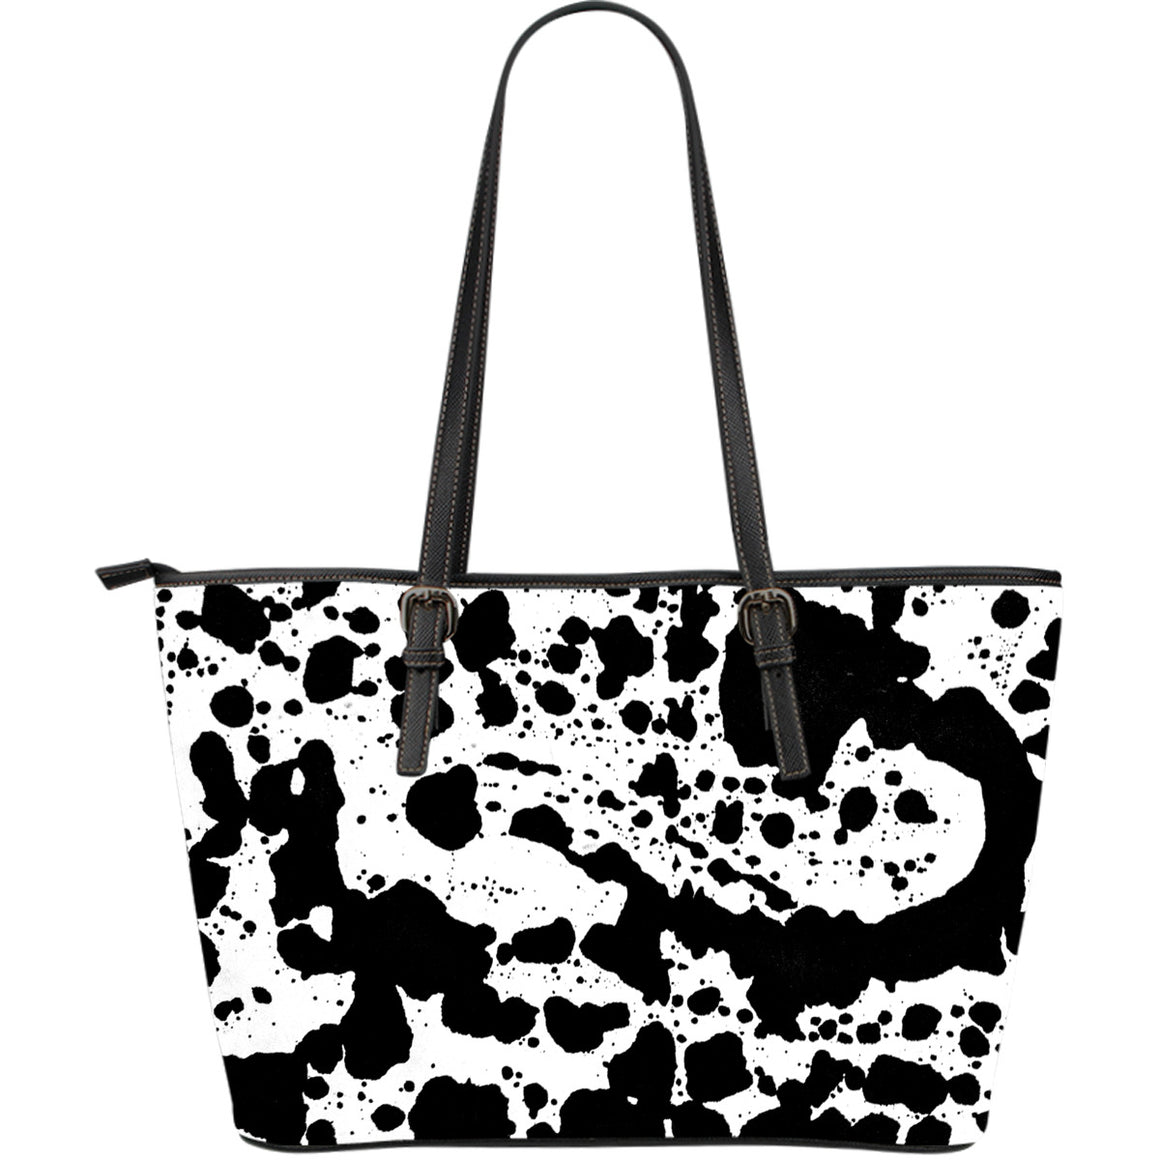 Dalmatian Large Leather Tote